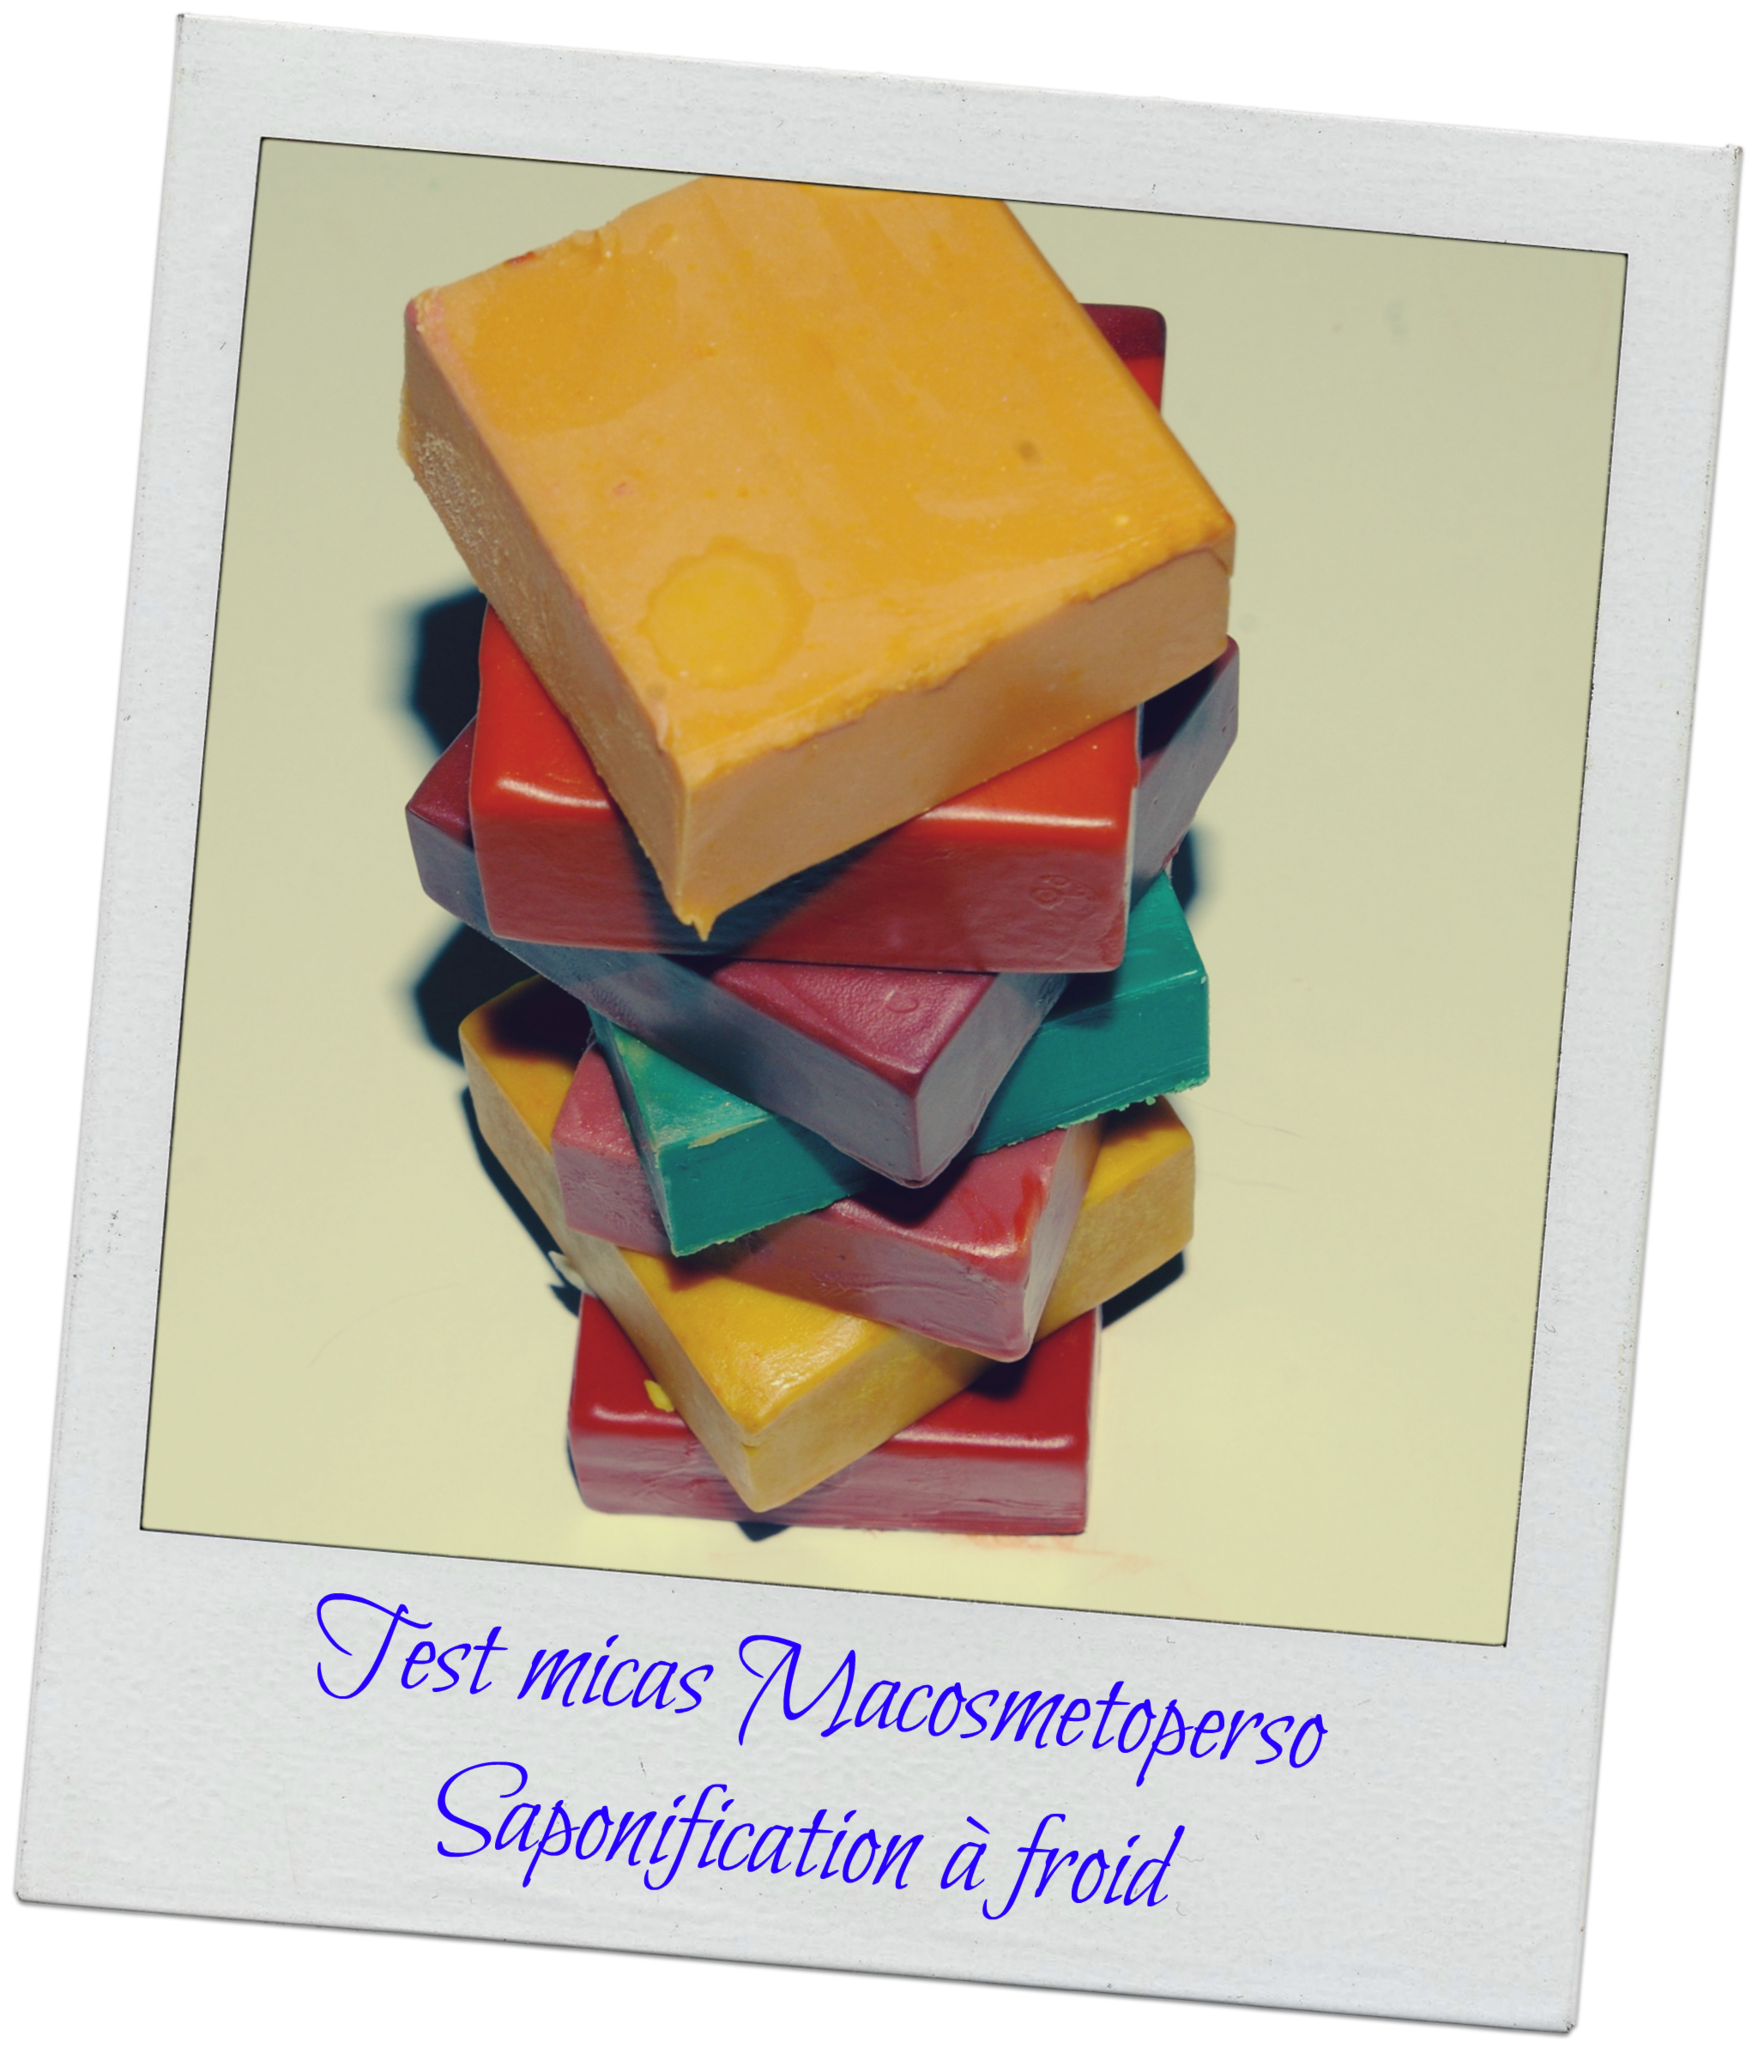 Test Micas Macosmetoperso (saponification à froid)